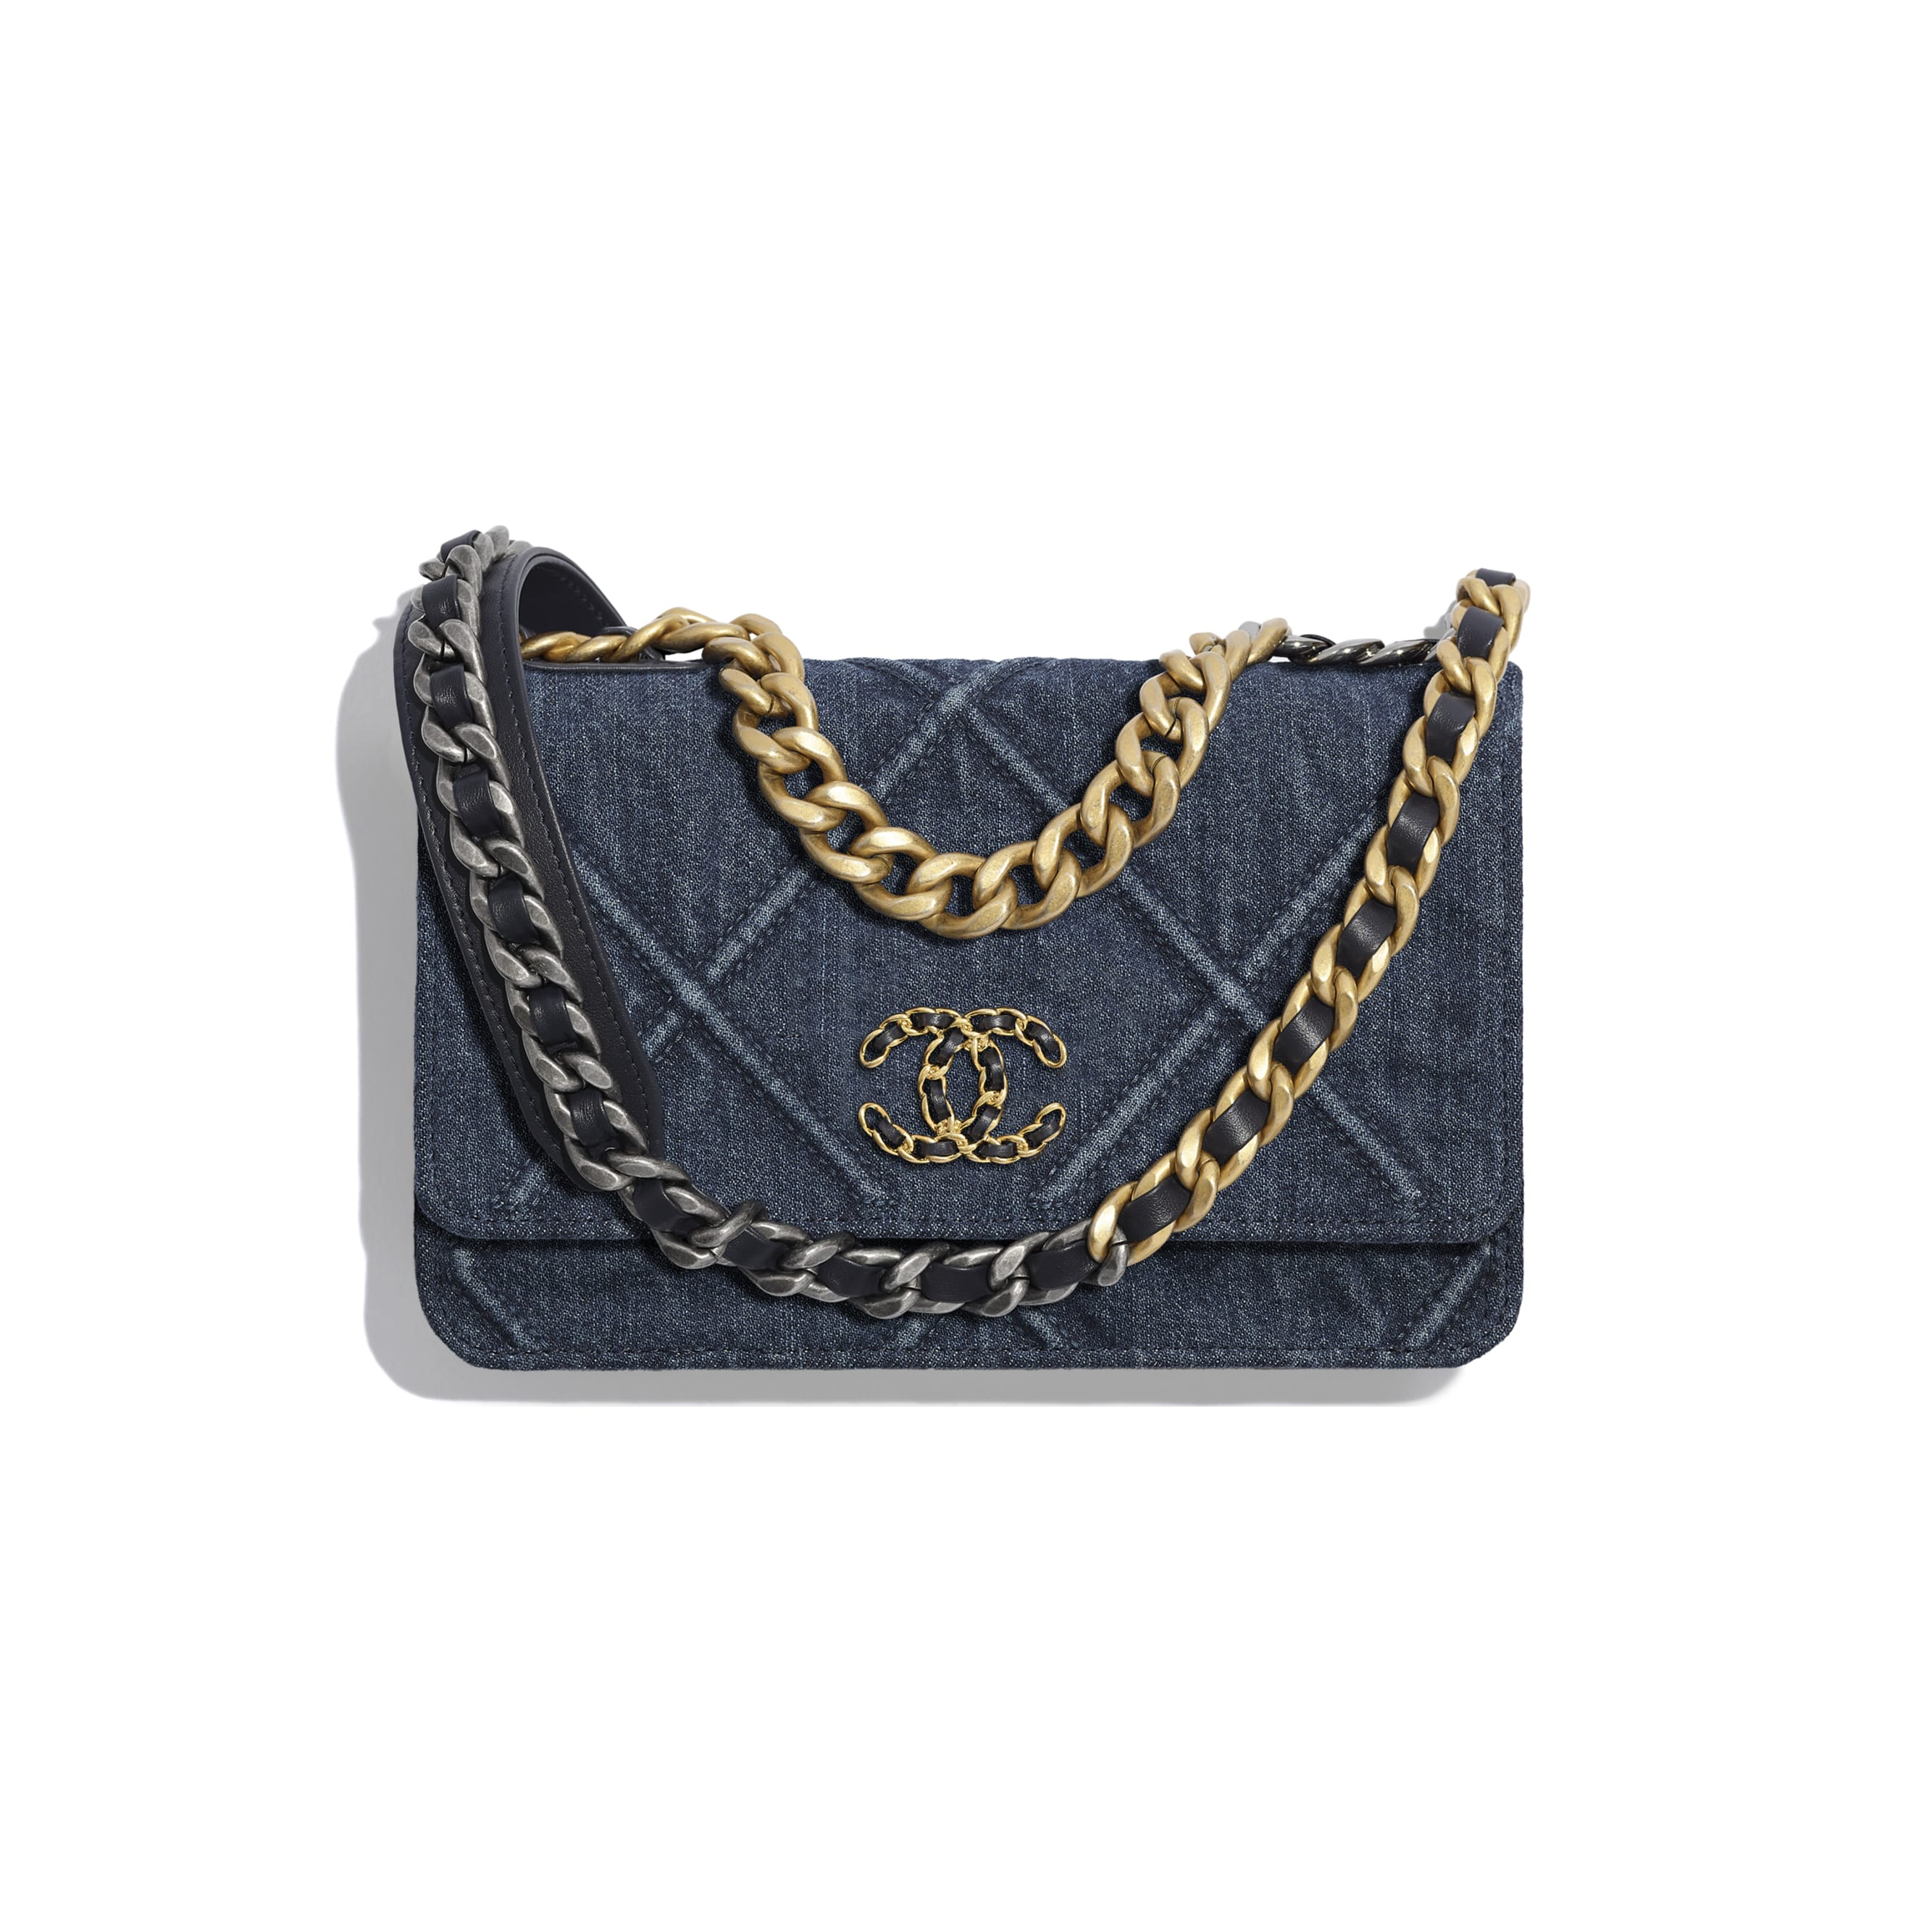 CHANEL 19 Wallet on Chain - Blue - Denim, Gold-Tone, Silver-Tone & Ruthenium-Finish Metal - Default view - see standard sized version